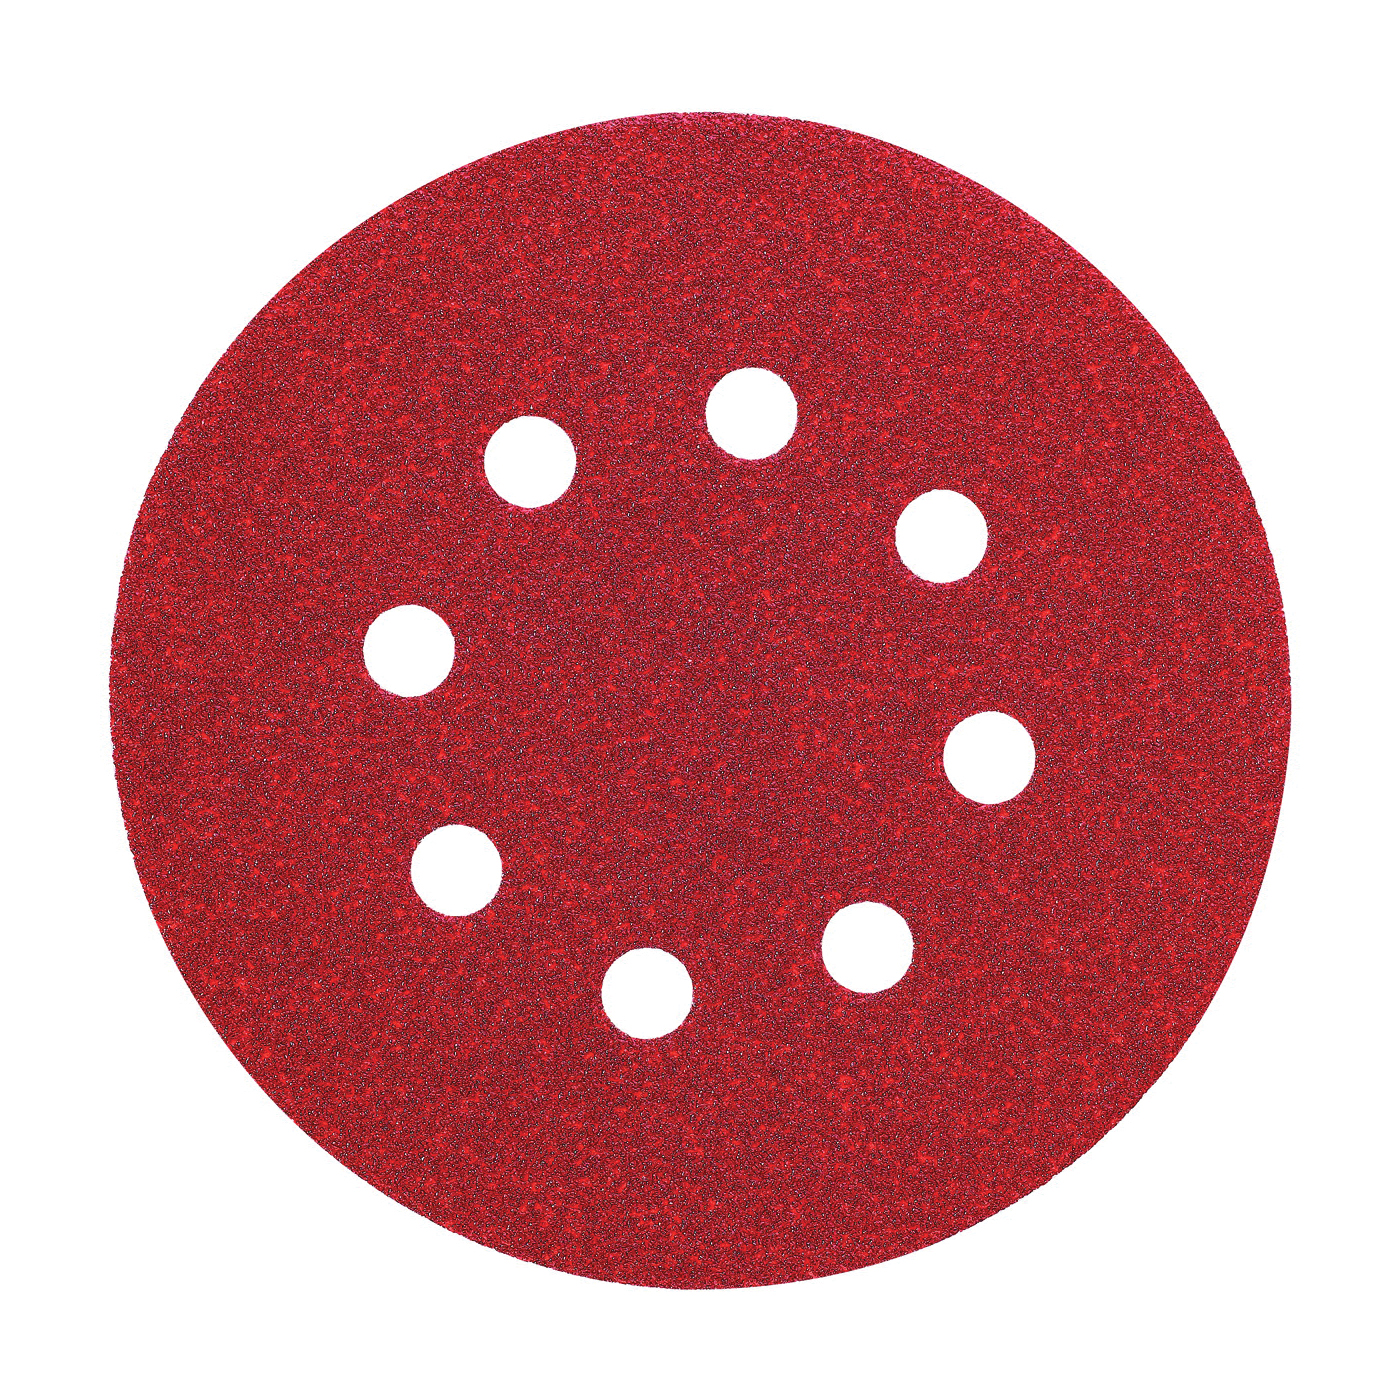 Picture of DeWALT DW4309 Sanding Disc, 5 in Dia, Coated, 80 Grit, Aluminum Oxide Abrasive, Paper Backing, 8-Hole